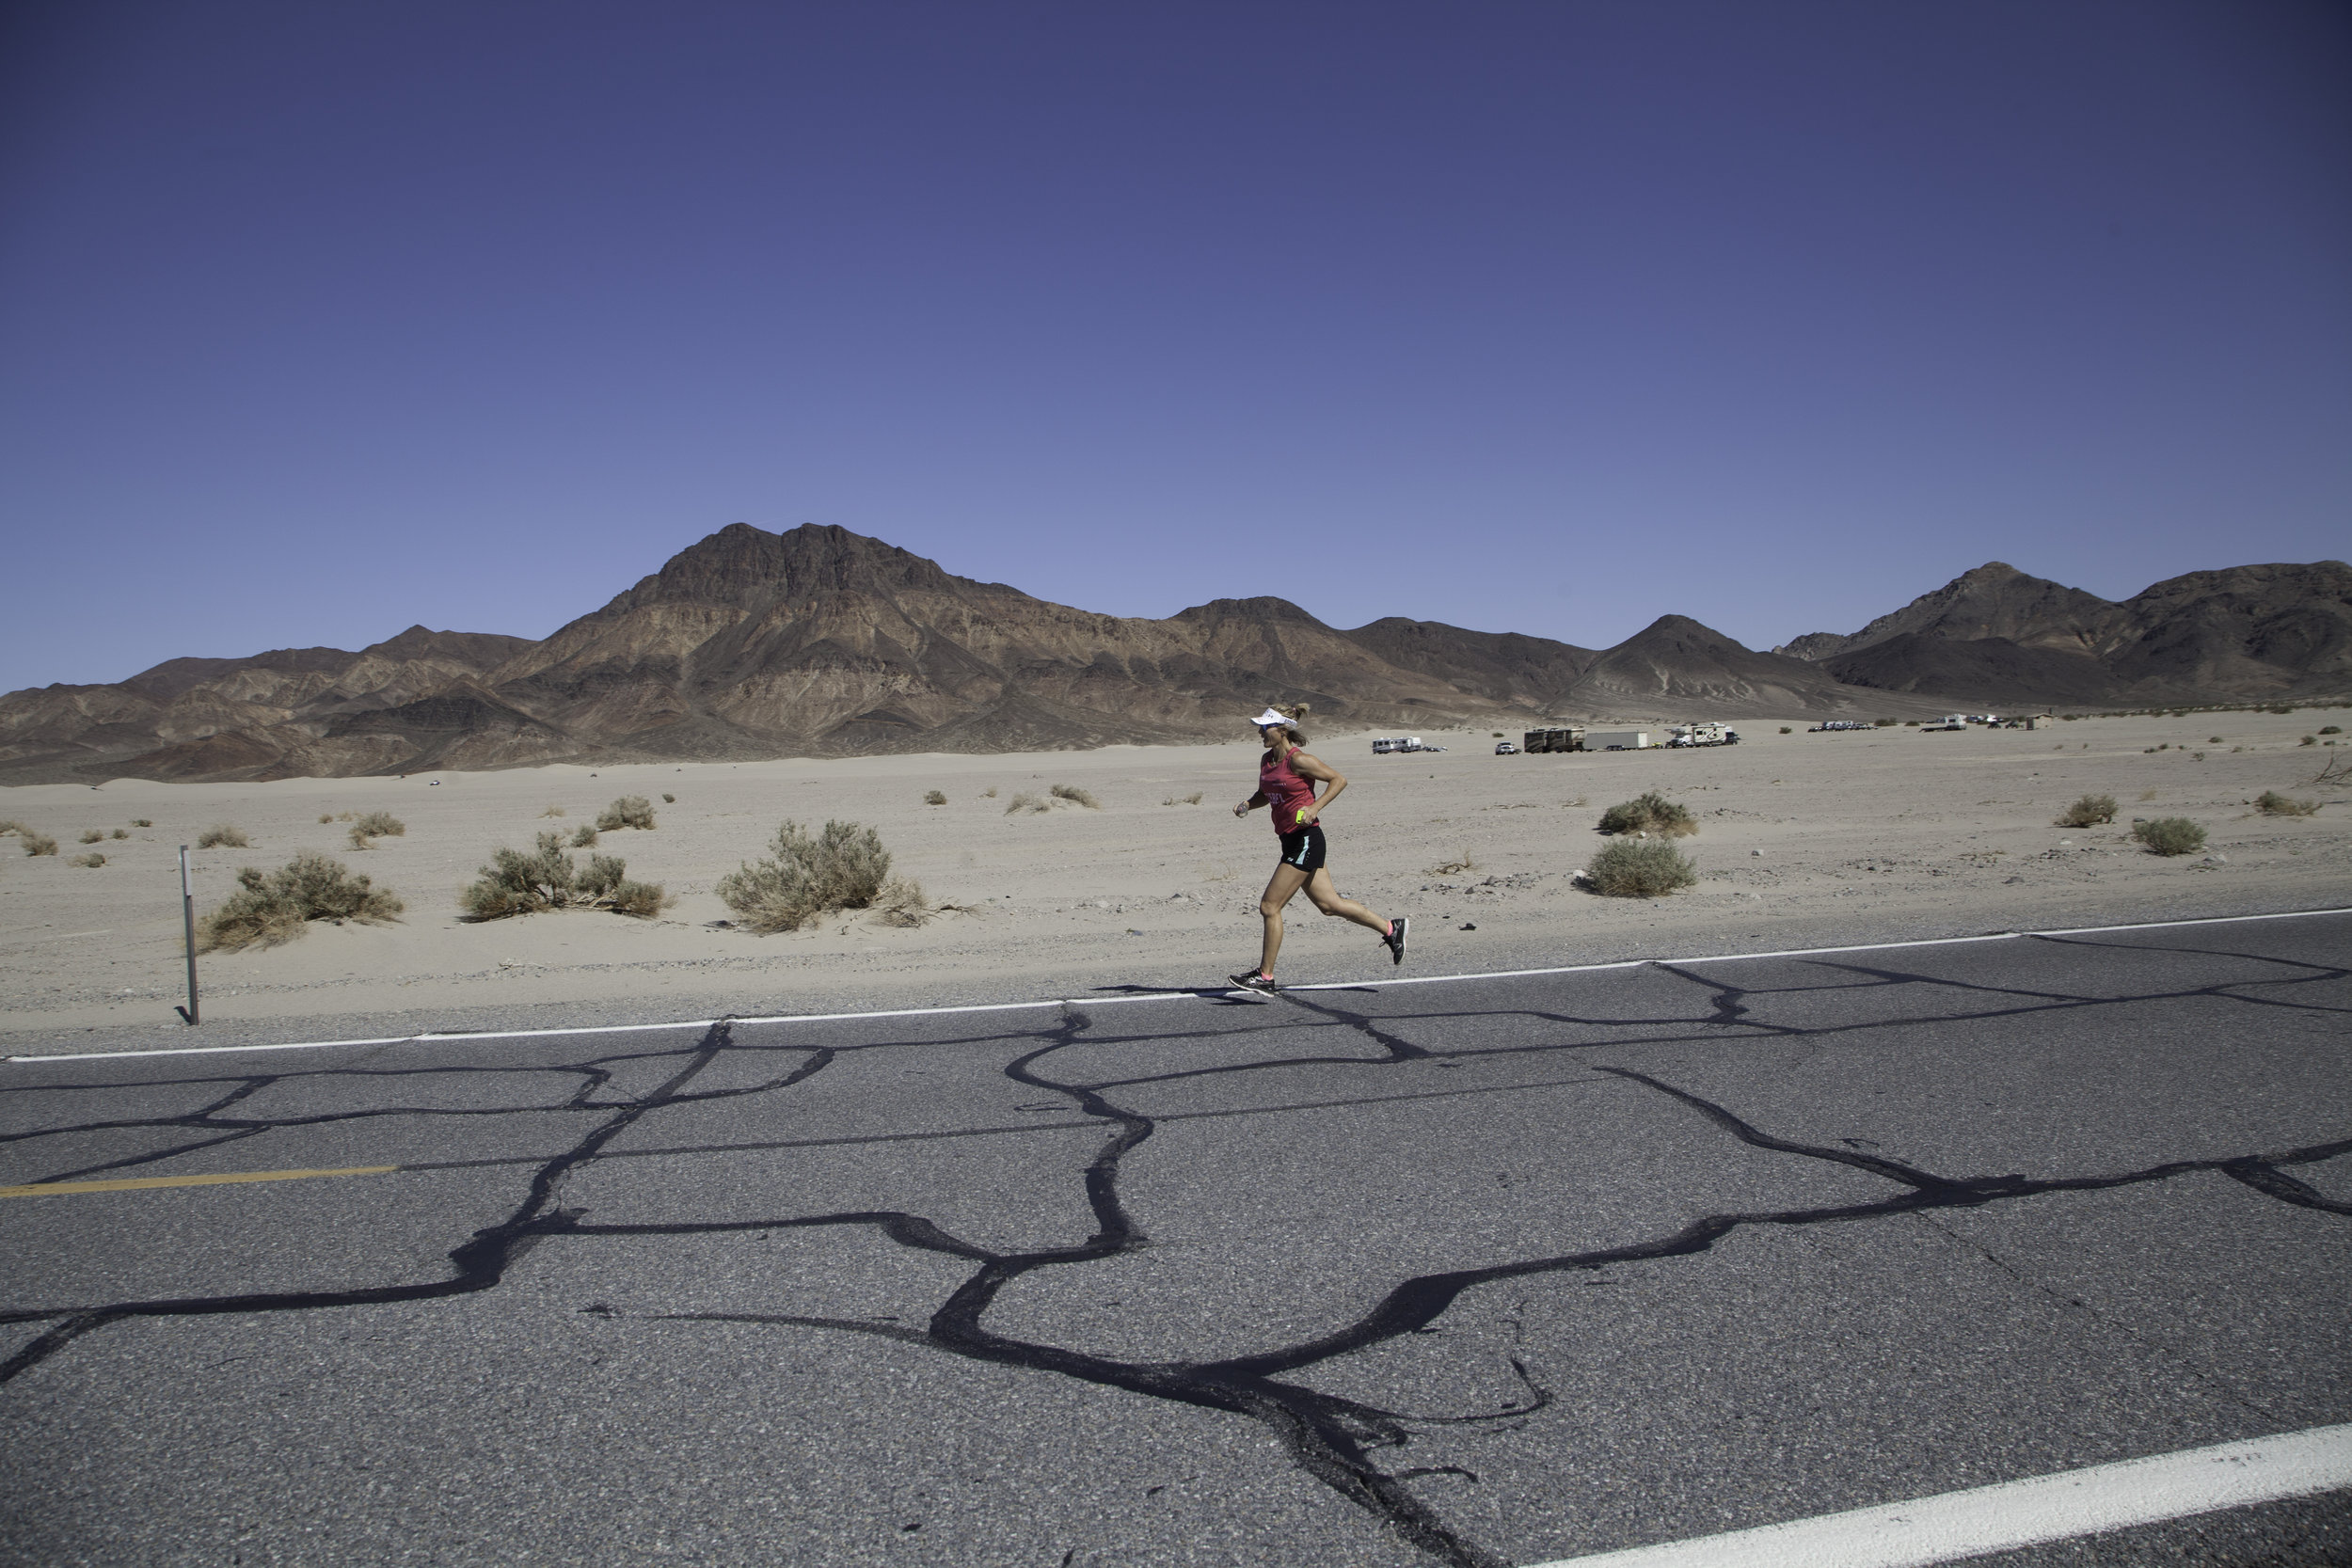 The Speed Project - A gruelling 340 mile ultra-relay, starting at Santa Monica Pier in Los Angeles and ending in Las Vegas (via Death Valley). The race is completely unsupported and over some incredibly challenging terrain.